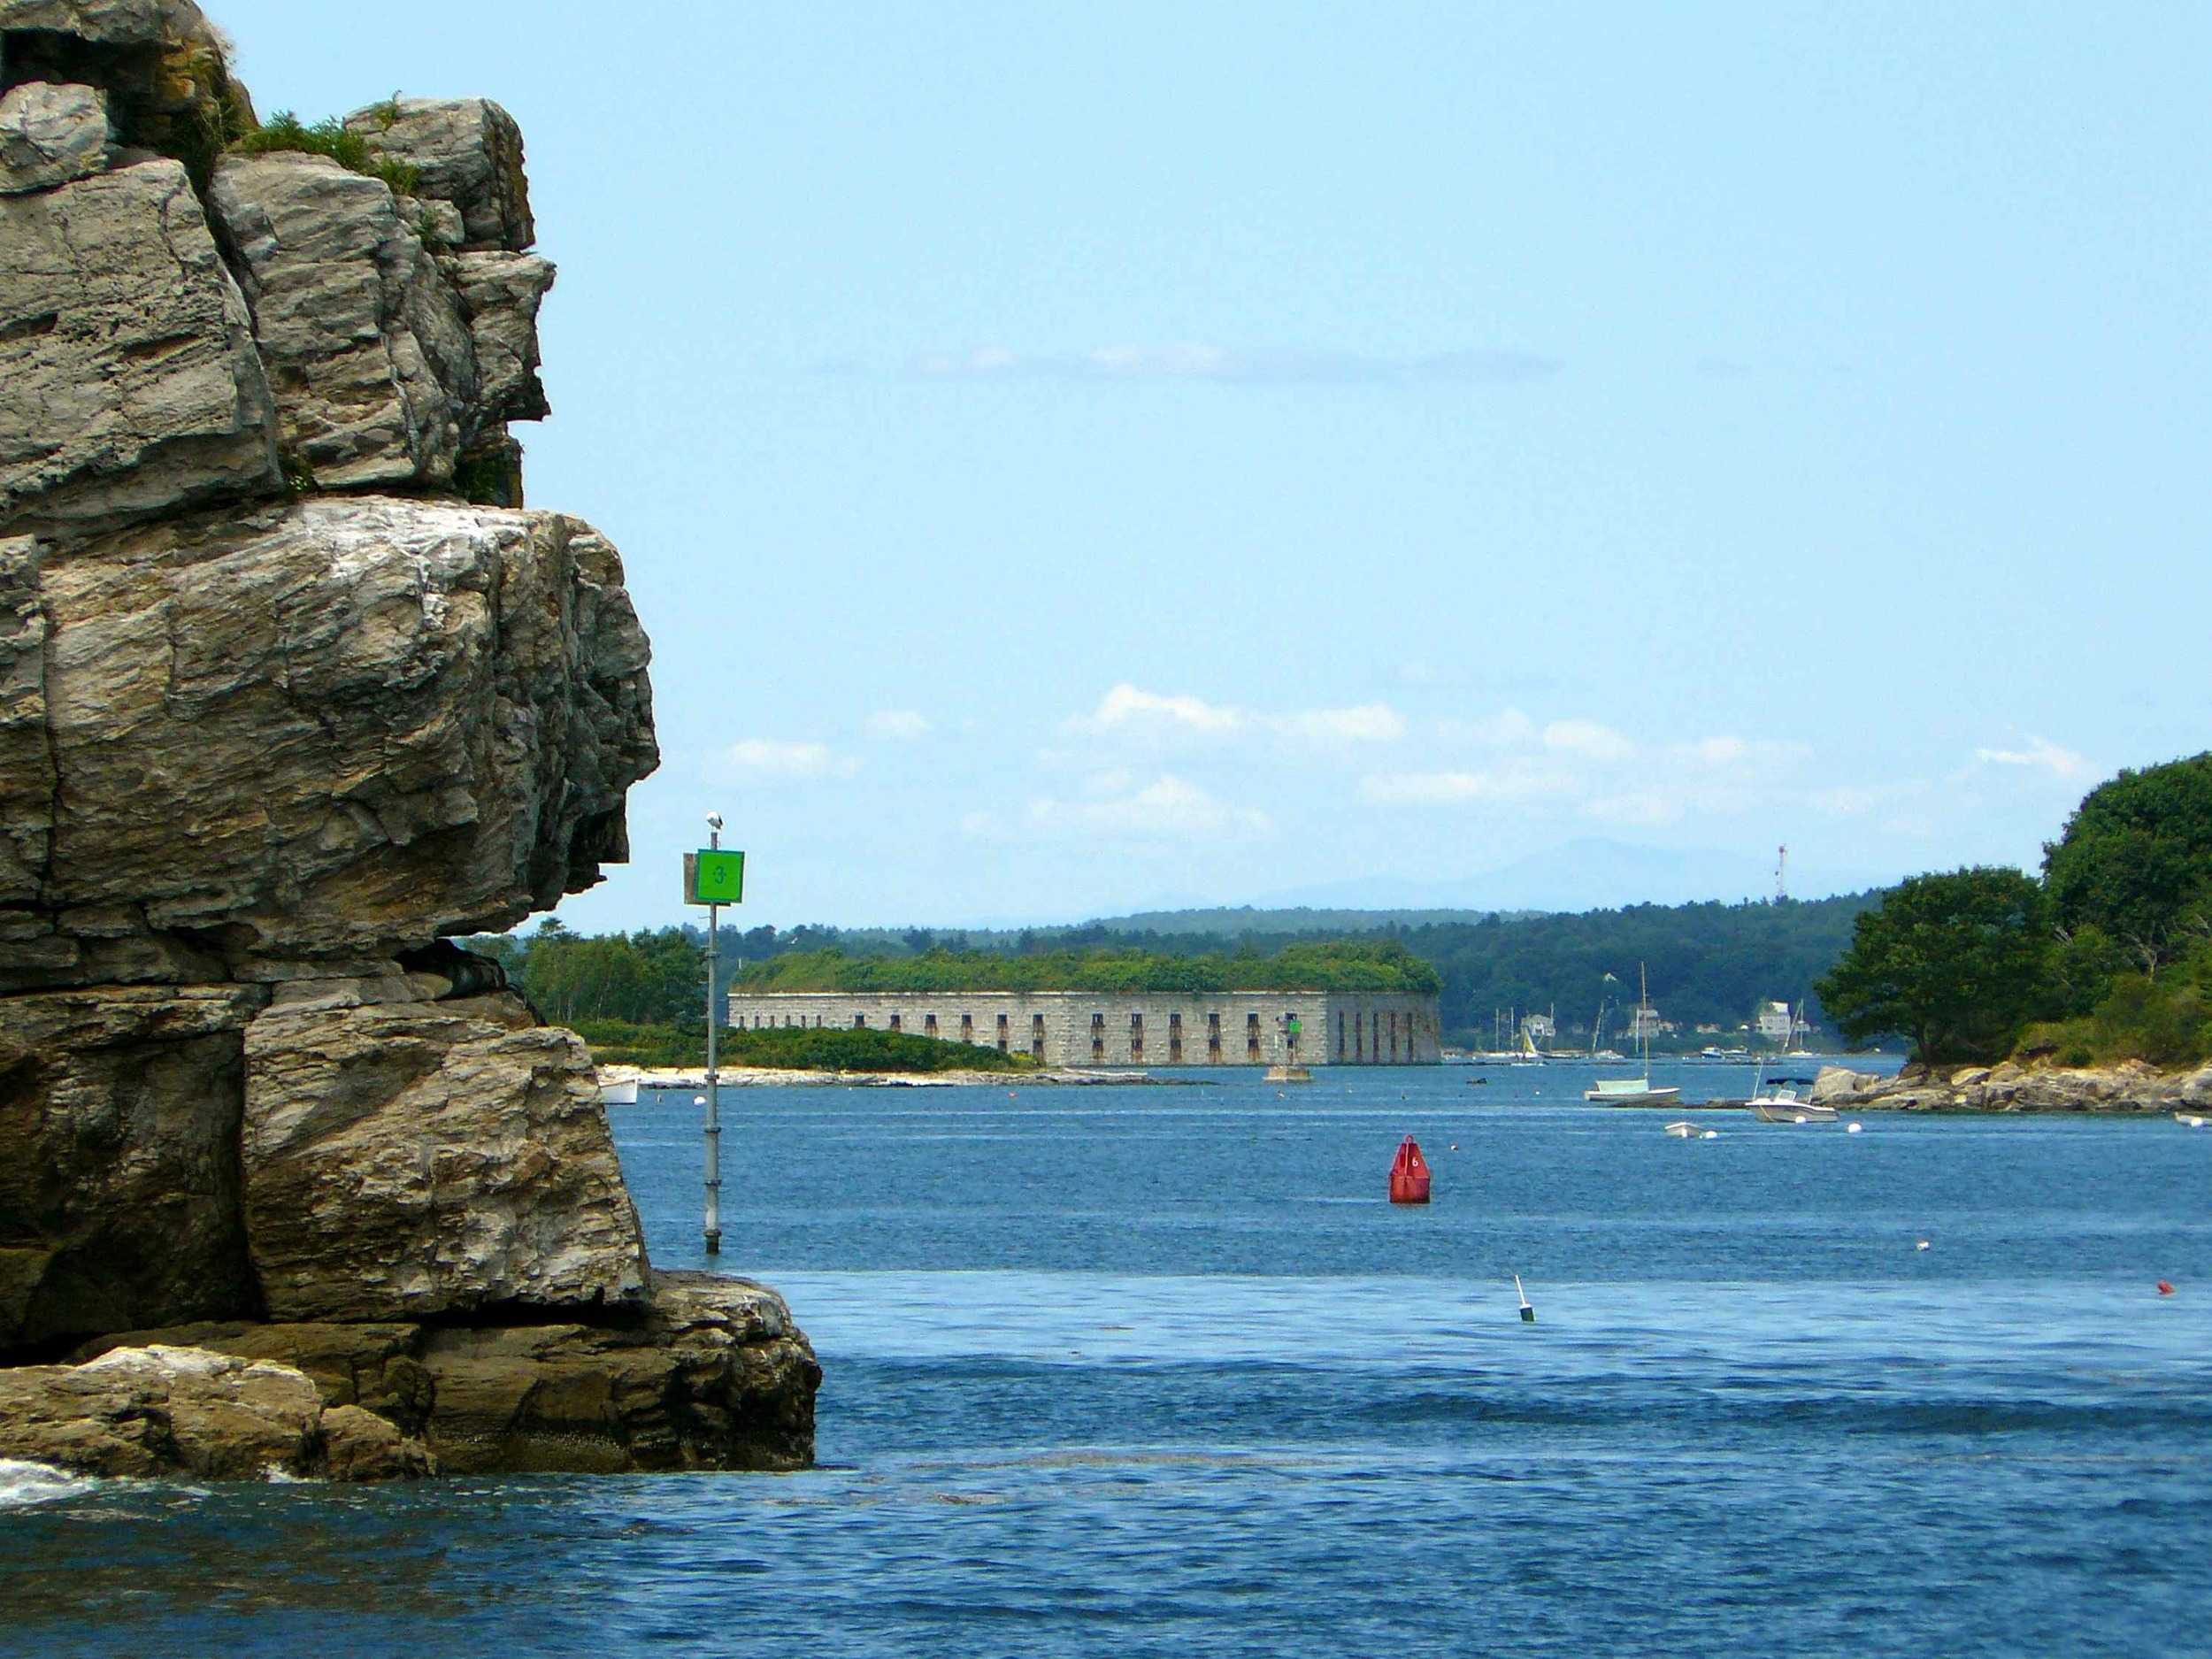 Fort_Gorges_seen_from_Atlantic_Ocean_July_2012.jpg